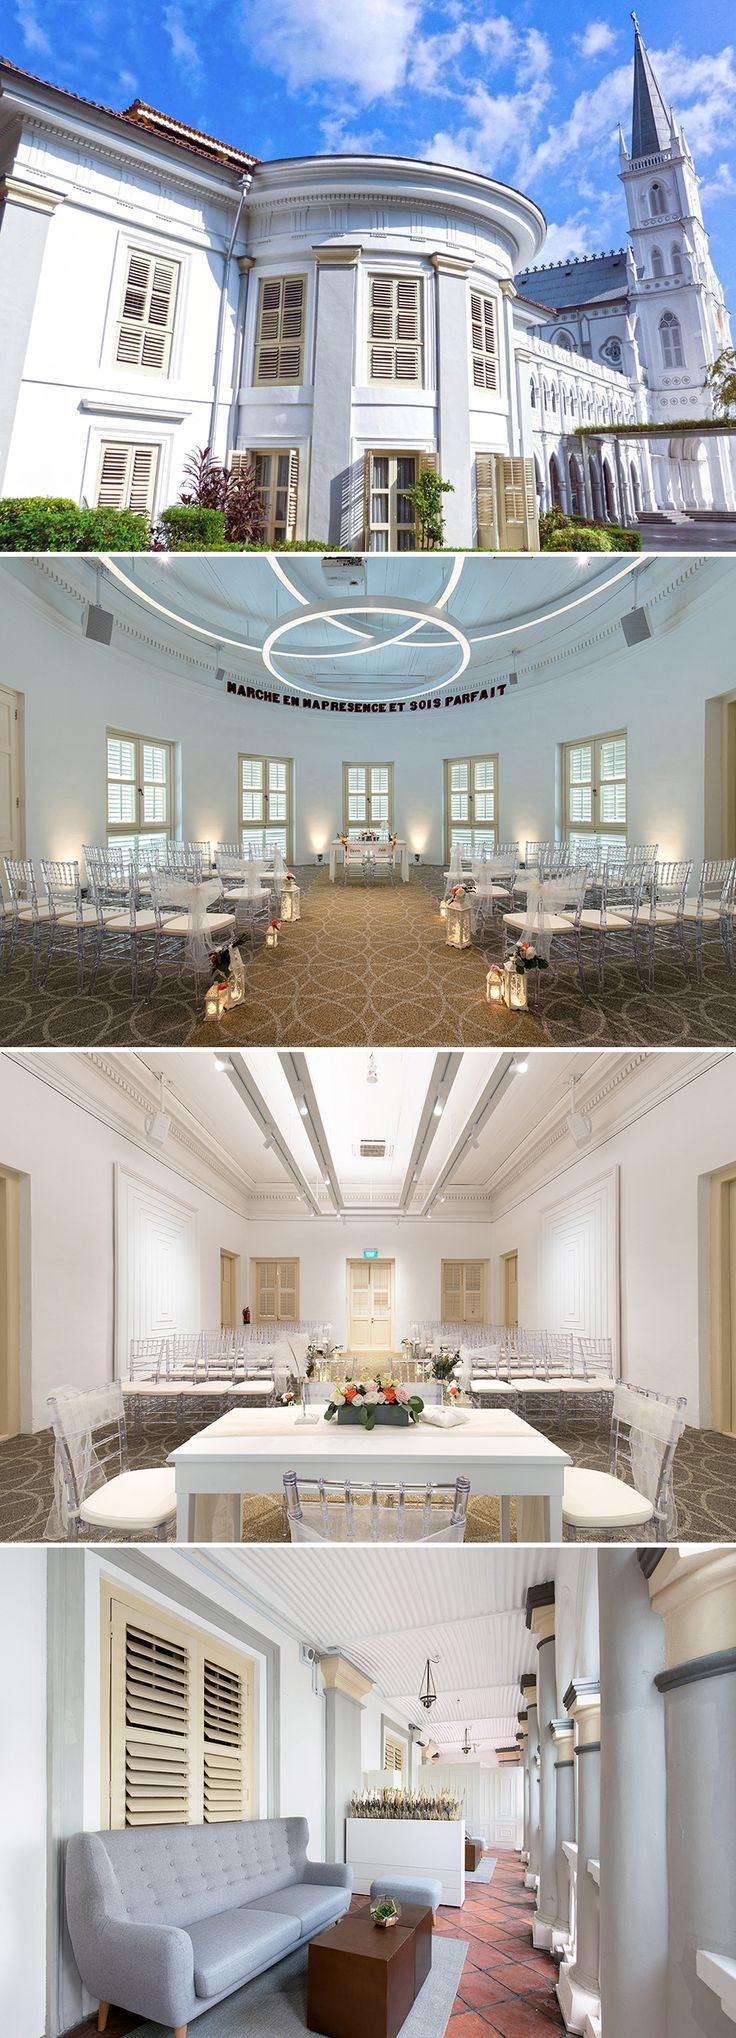 Make History at Caldwell House A Wedding in the Second